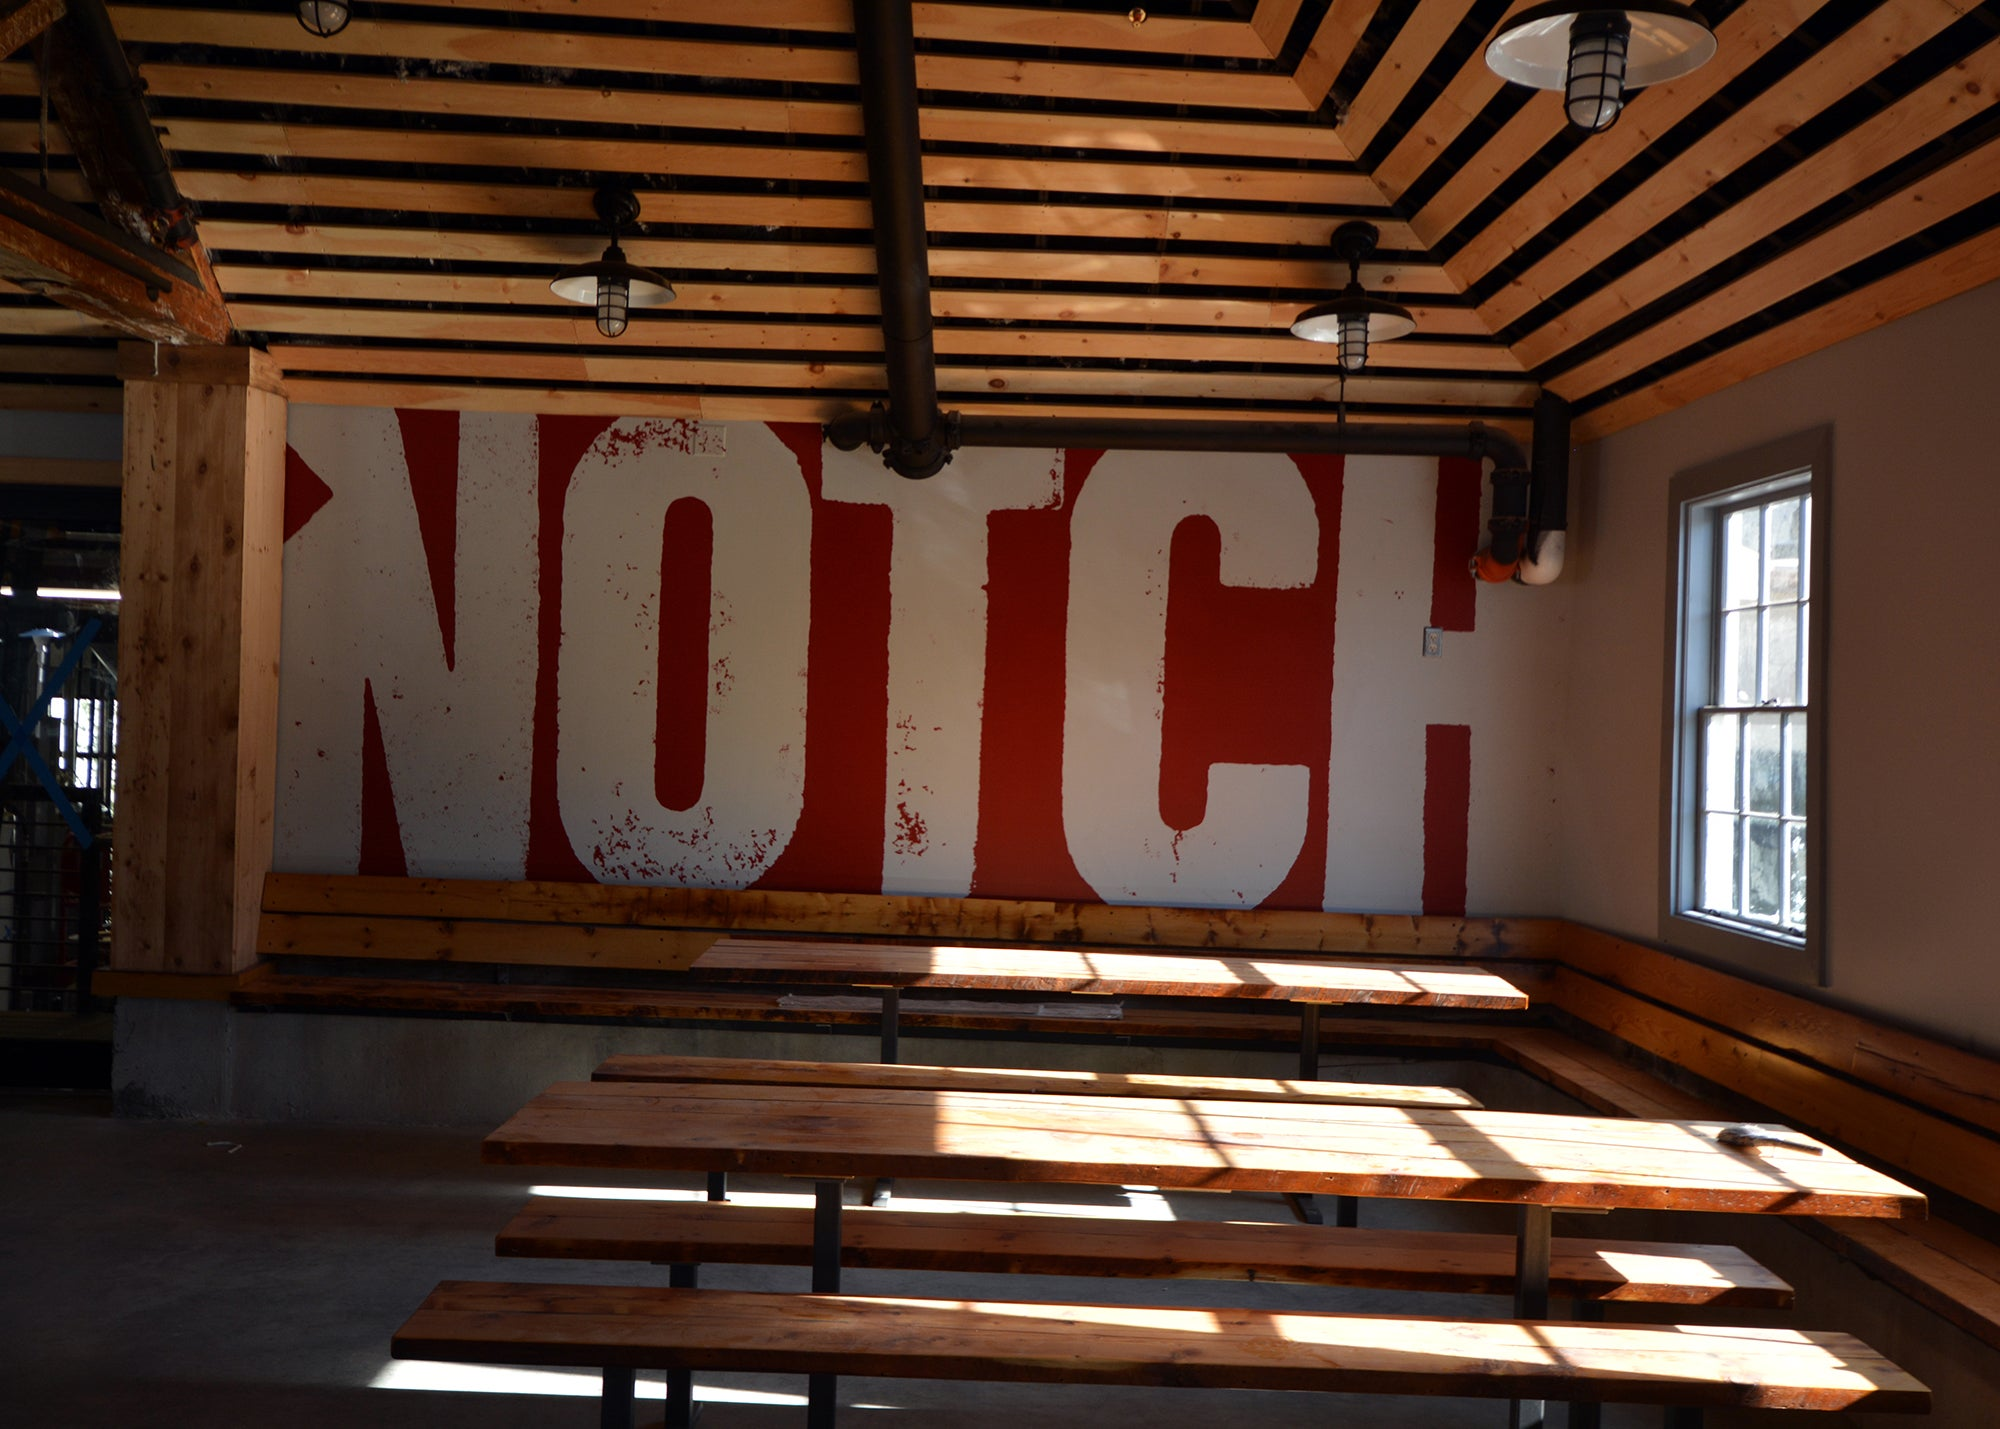 Notch Brewing at The Speedway